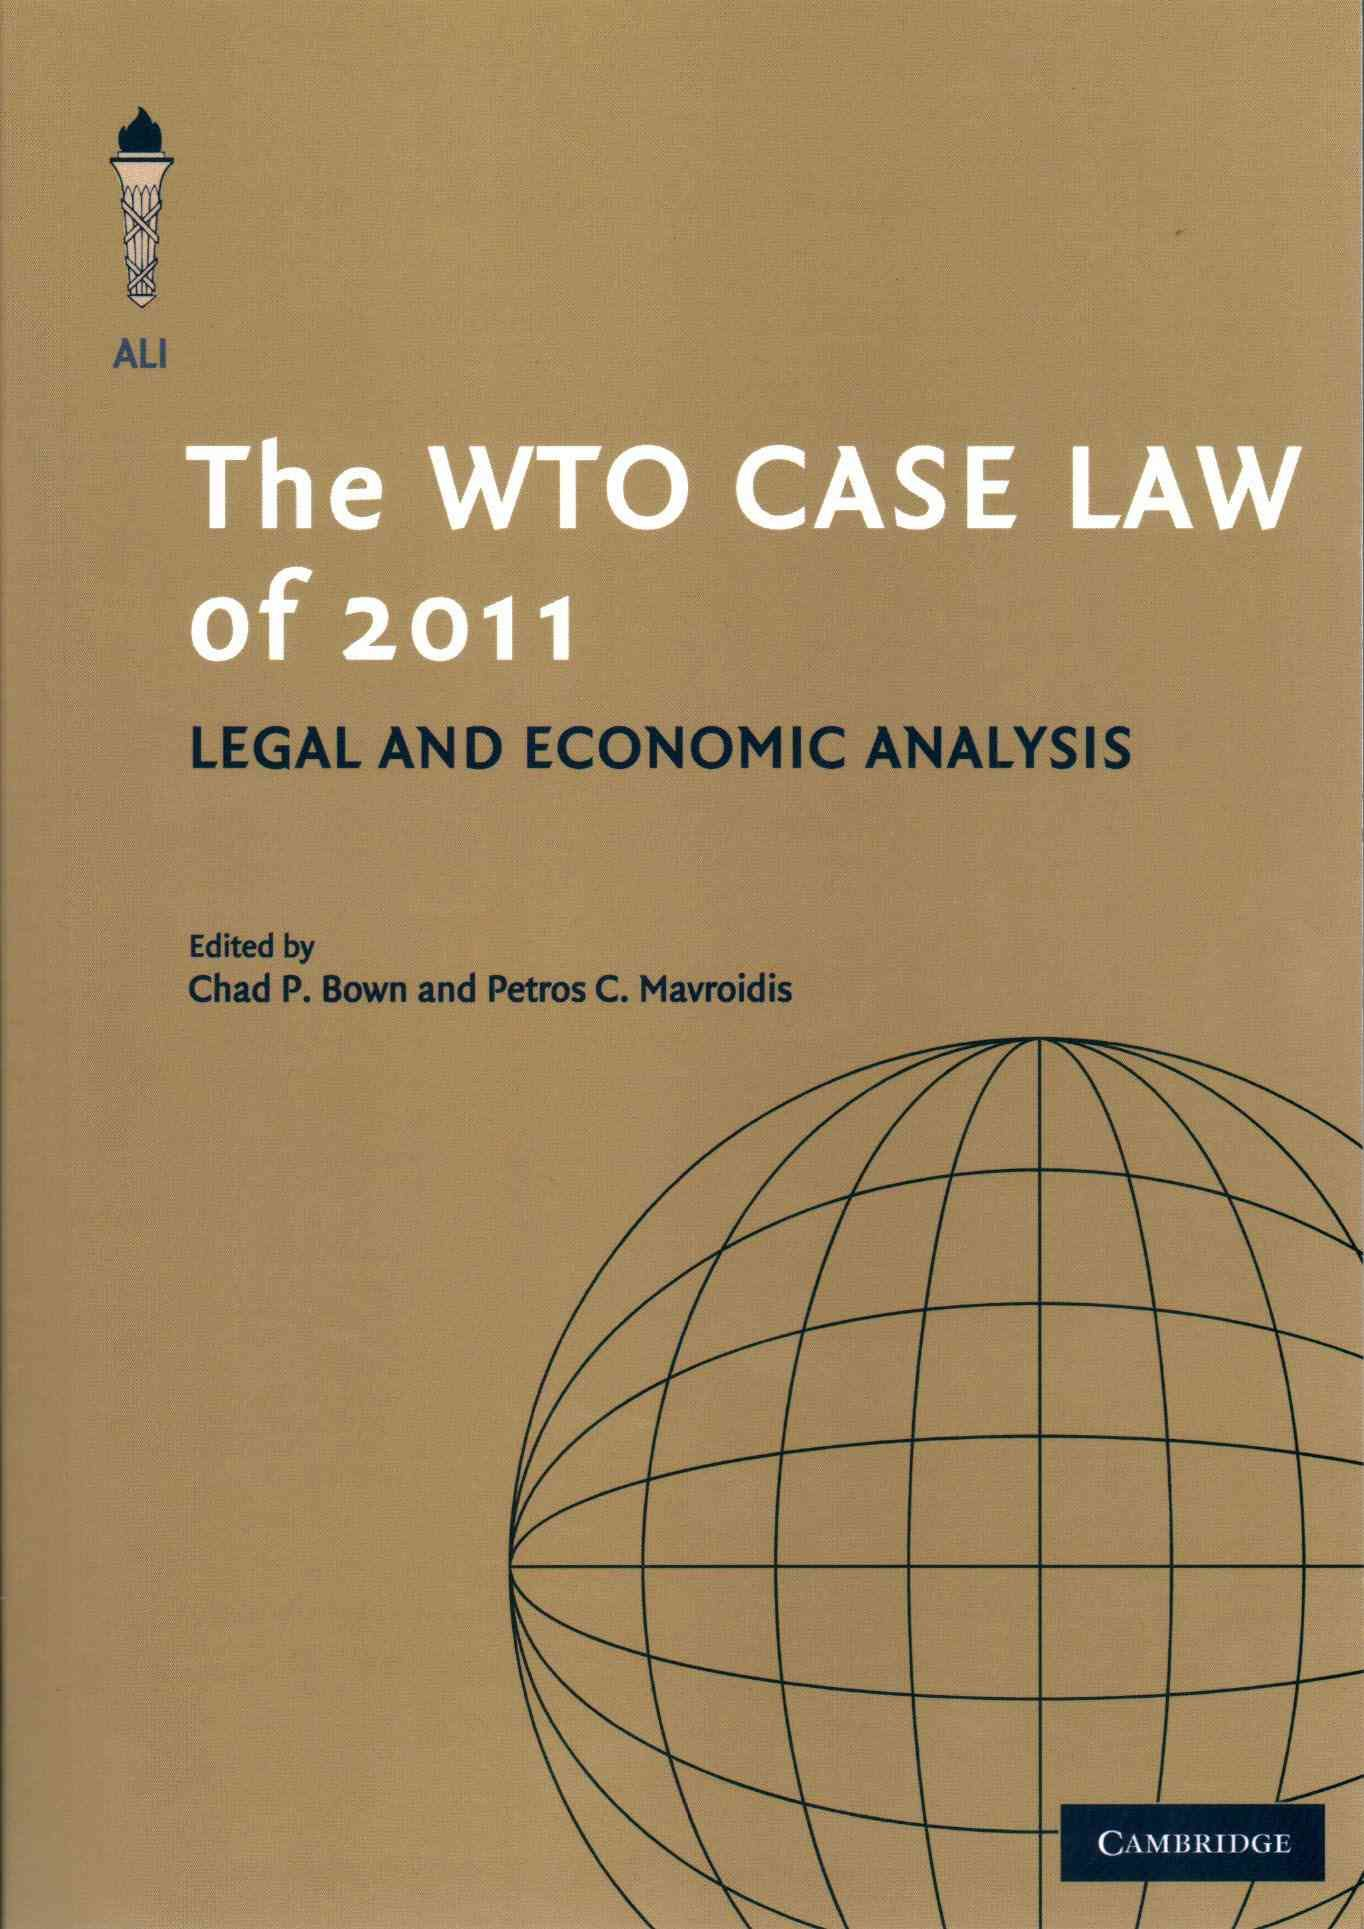 The WTO Case Law of 2011: Legal and Economic Analysis